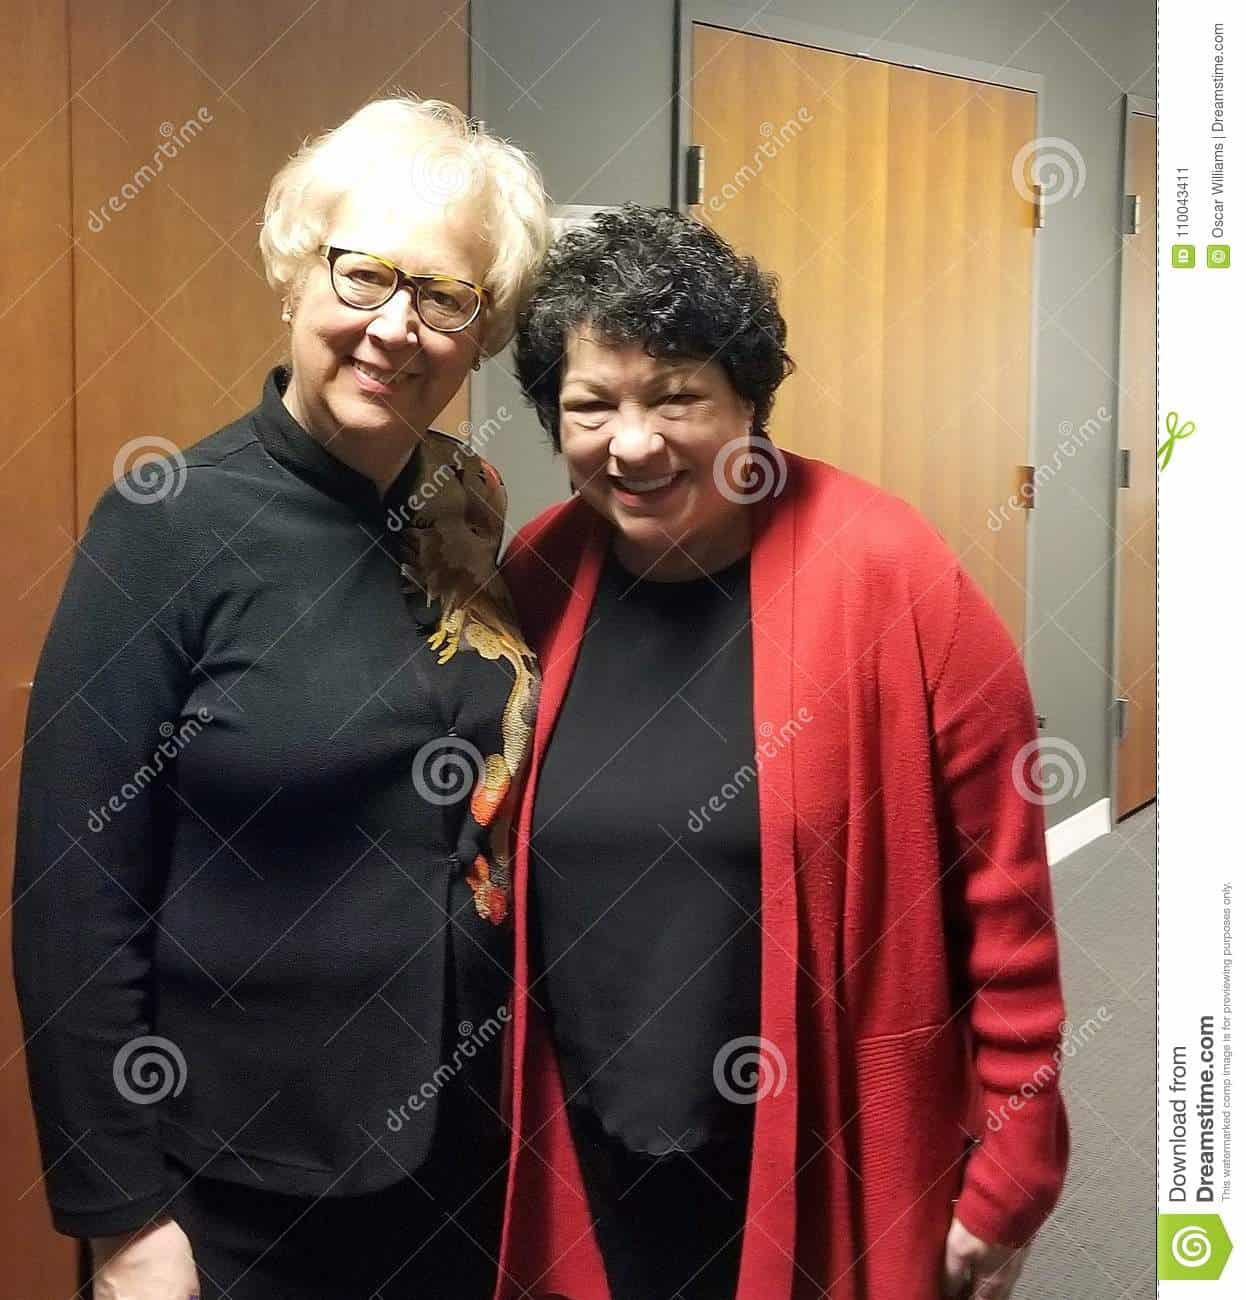 Sonia Sotomayor, Associate Justice of the Supreme Court of the US. 3